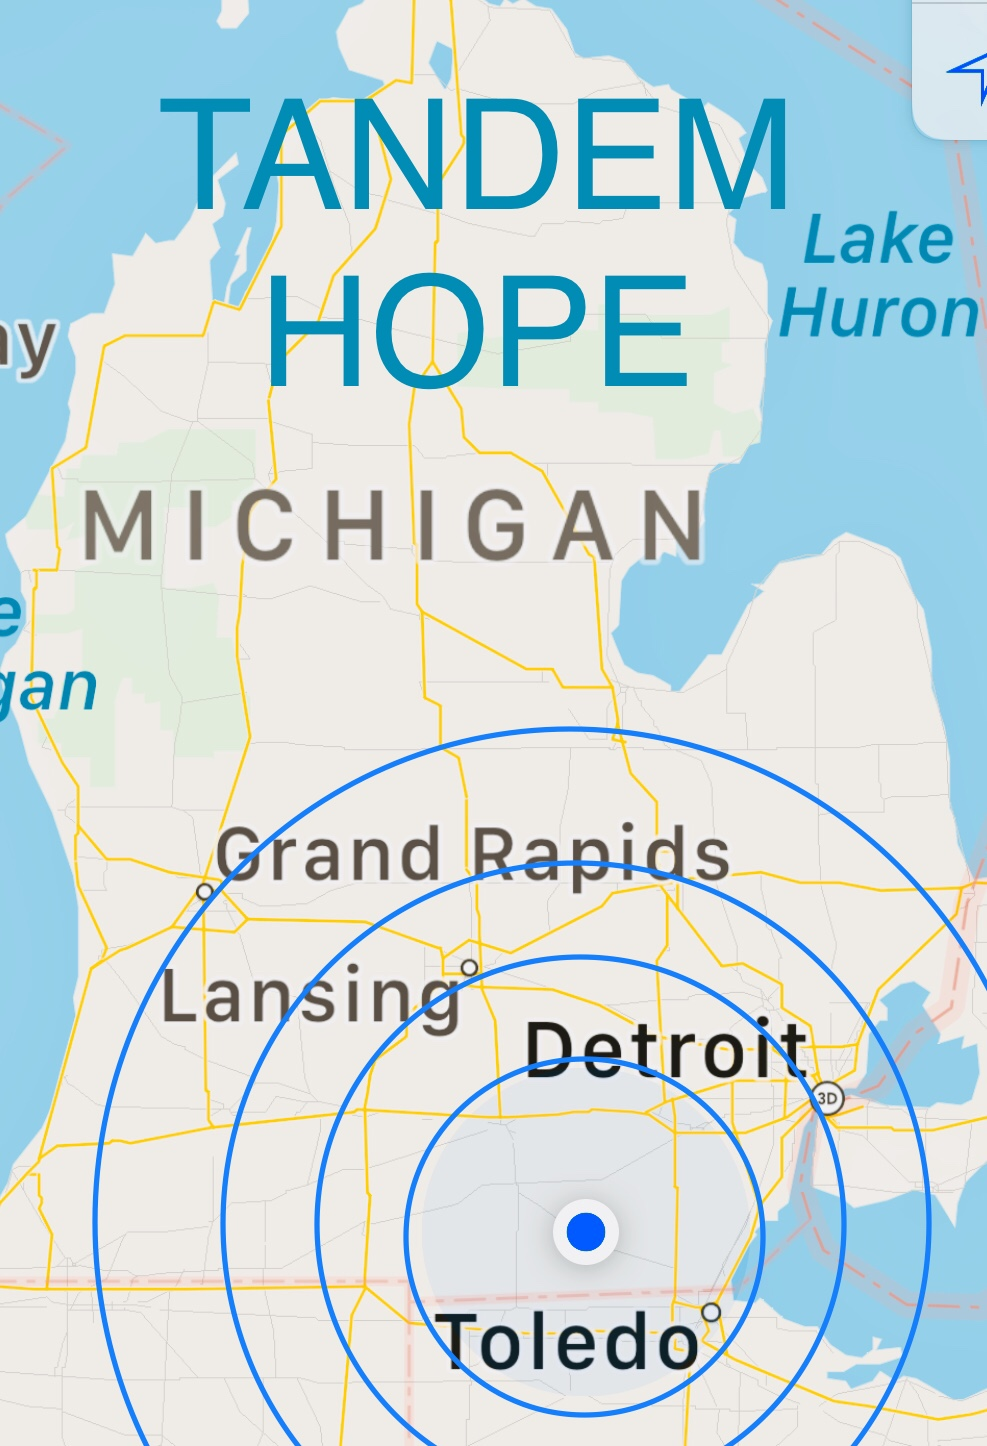 TANDEM HOPE - is stationed within Lenawee County & serves the Tri-State Area (MI, OH, IN).